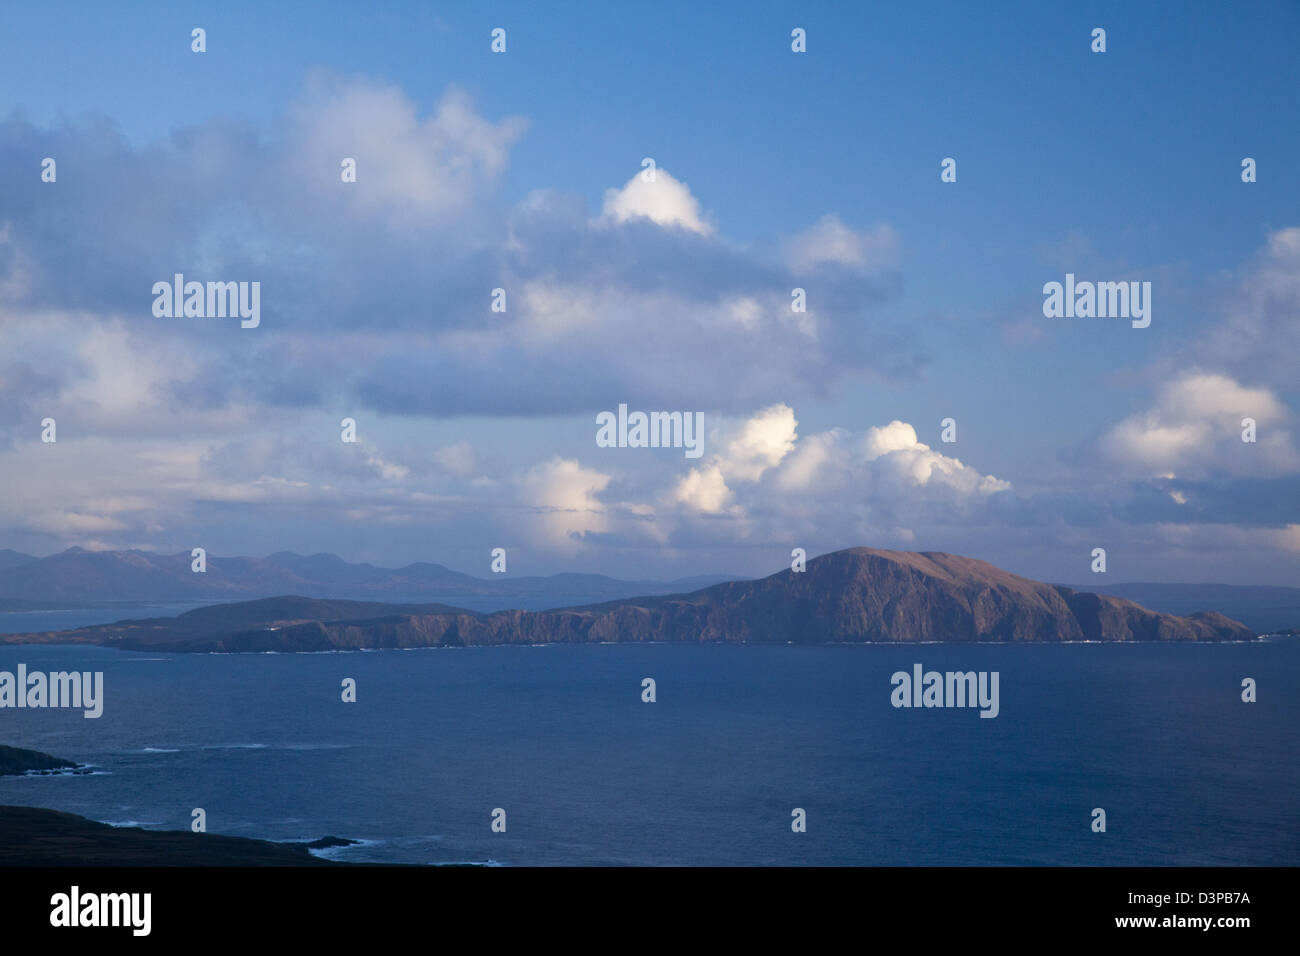 Clare Island seen from Achill Island, Clew Bay, County Mayo, Ireland. - Stock Image